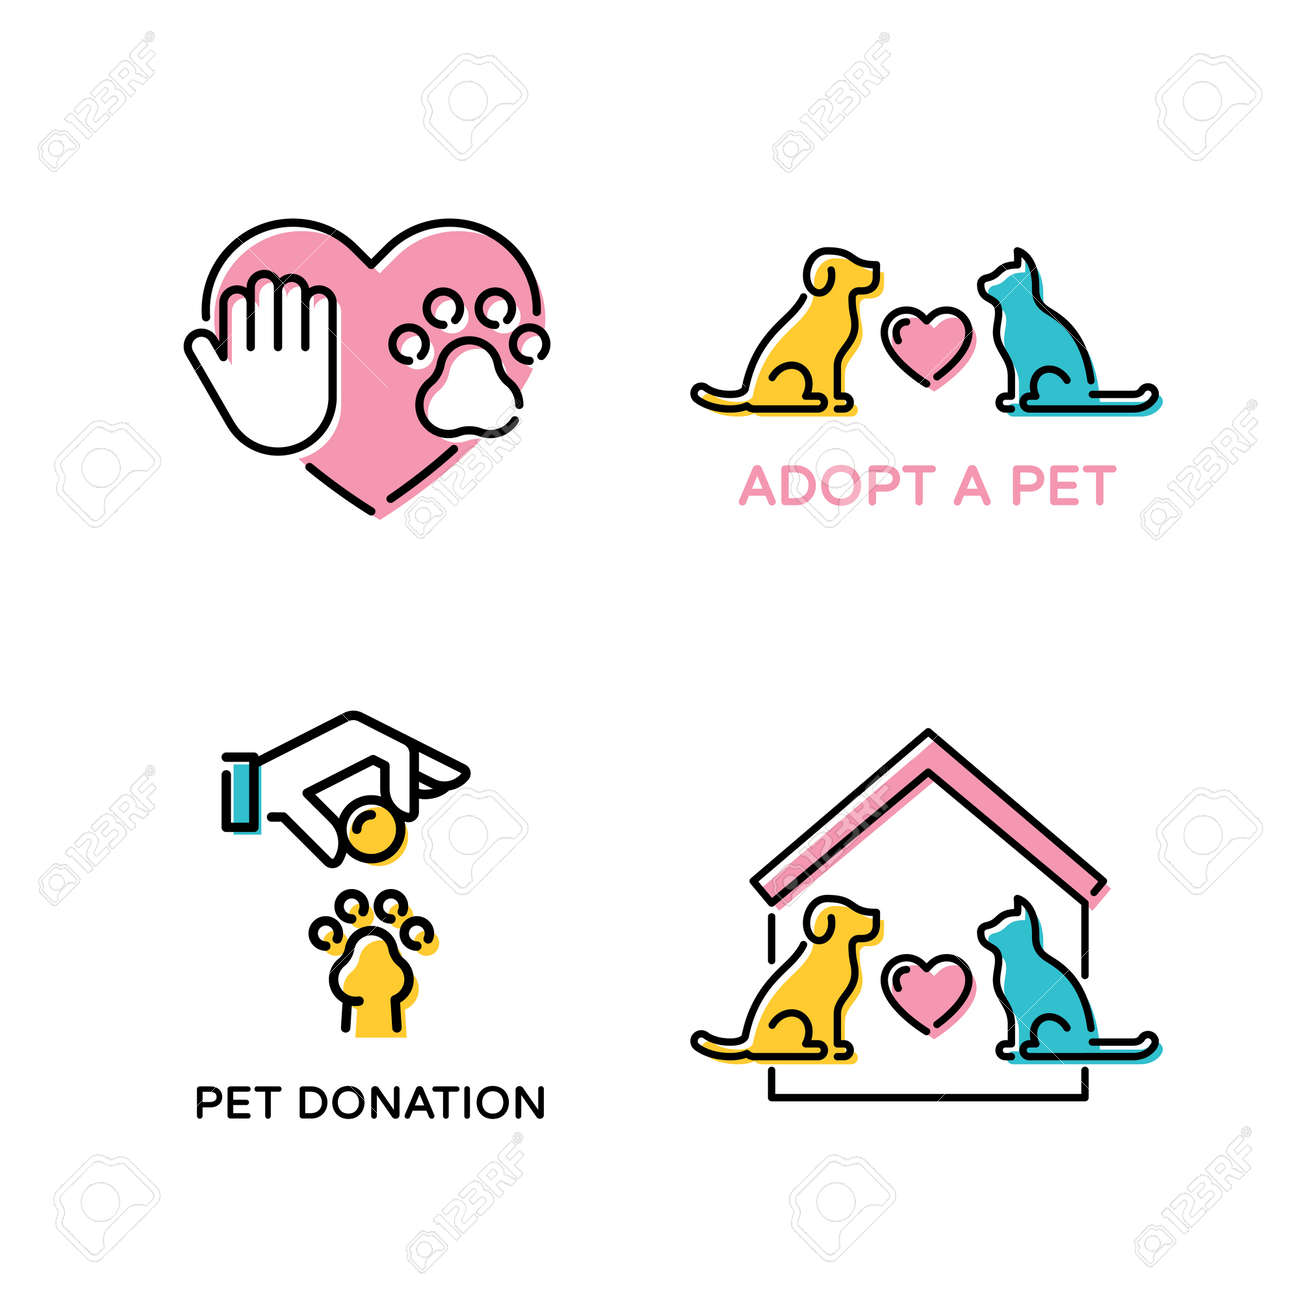 Vector Pet Love Design Poster Set Color Animal Banner Illustrations Royalty Free Cliparts Vectors And Stock Illustration Image 116950045